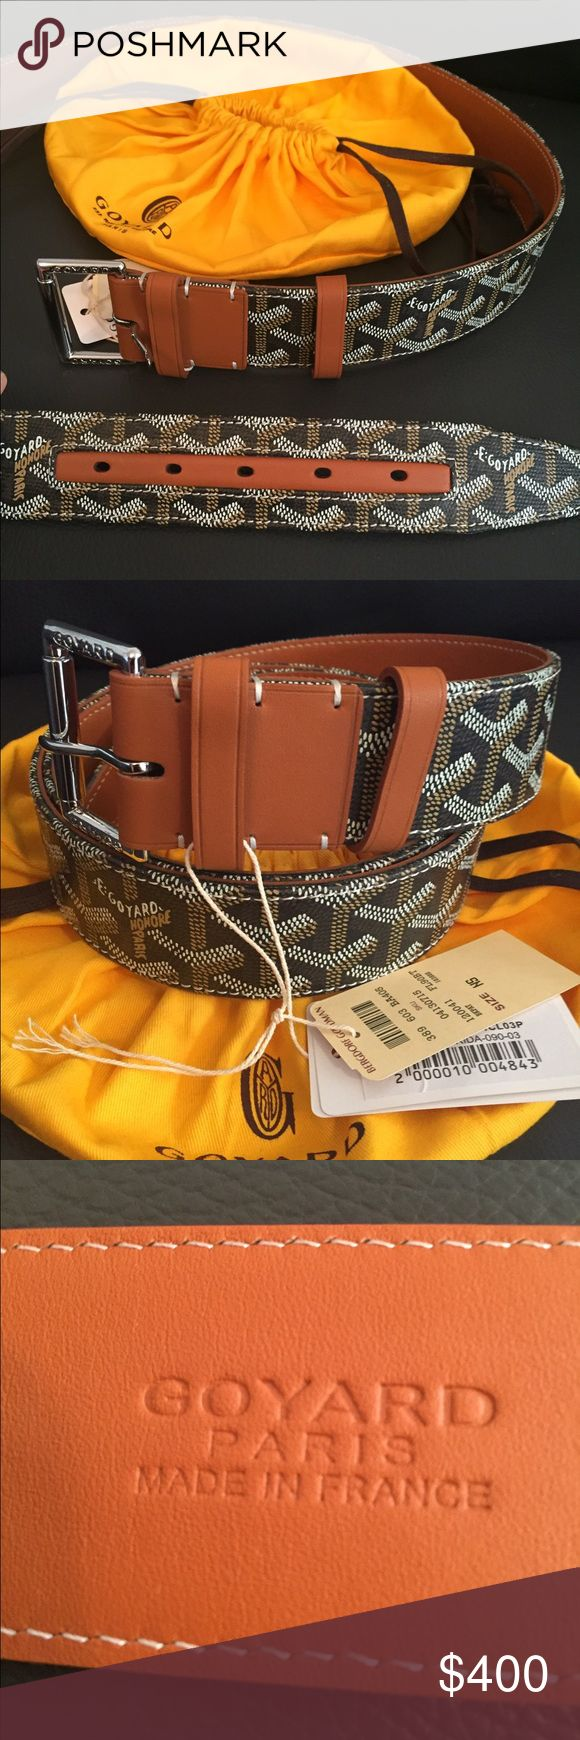 NWT Tan Goyard Belt Brand new and authentic tan Goyard. Comes with all original tags, and yellow Goyard pouch. Ask for size. Goyard Accessories Belts